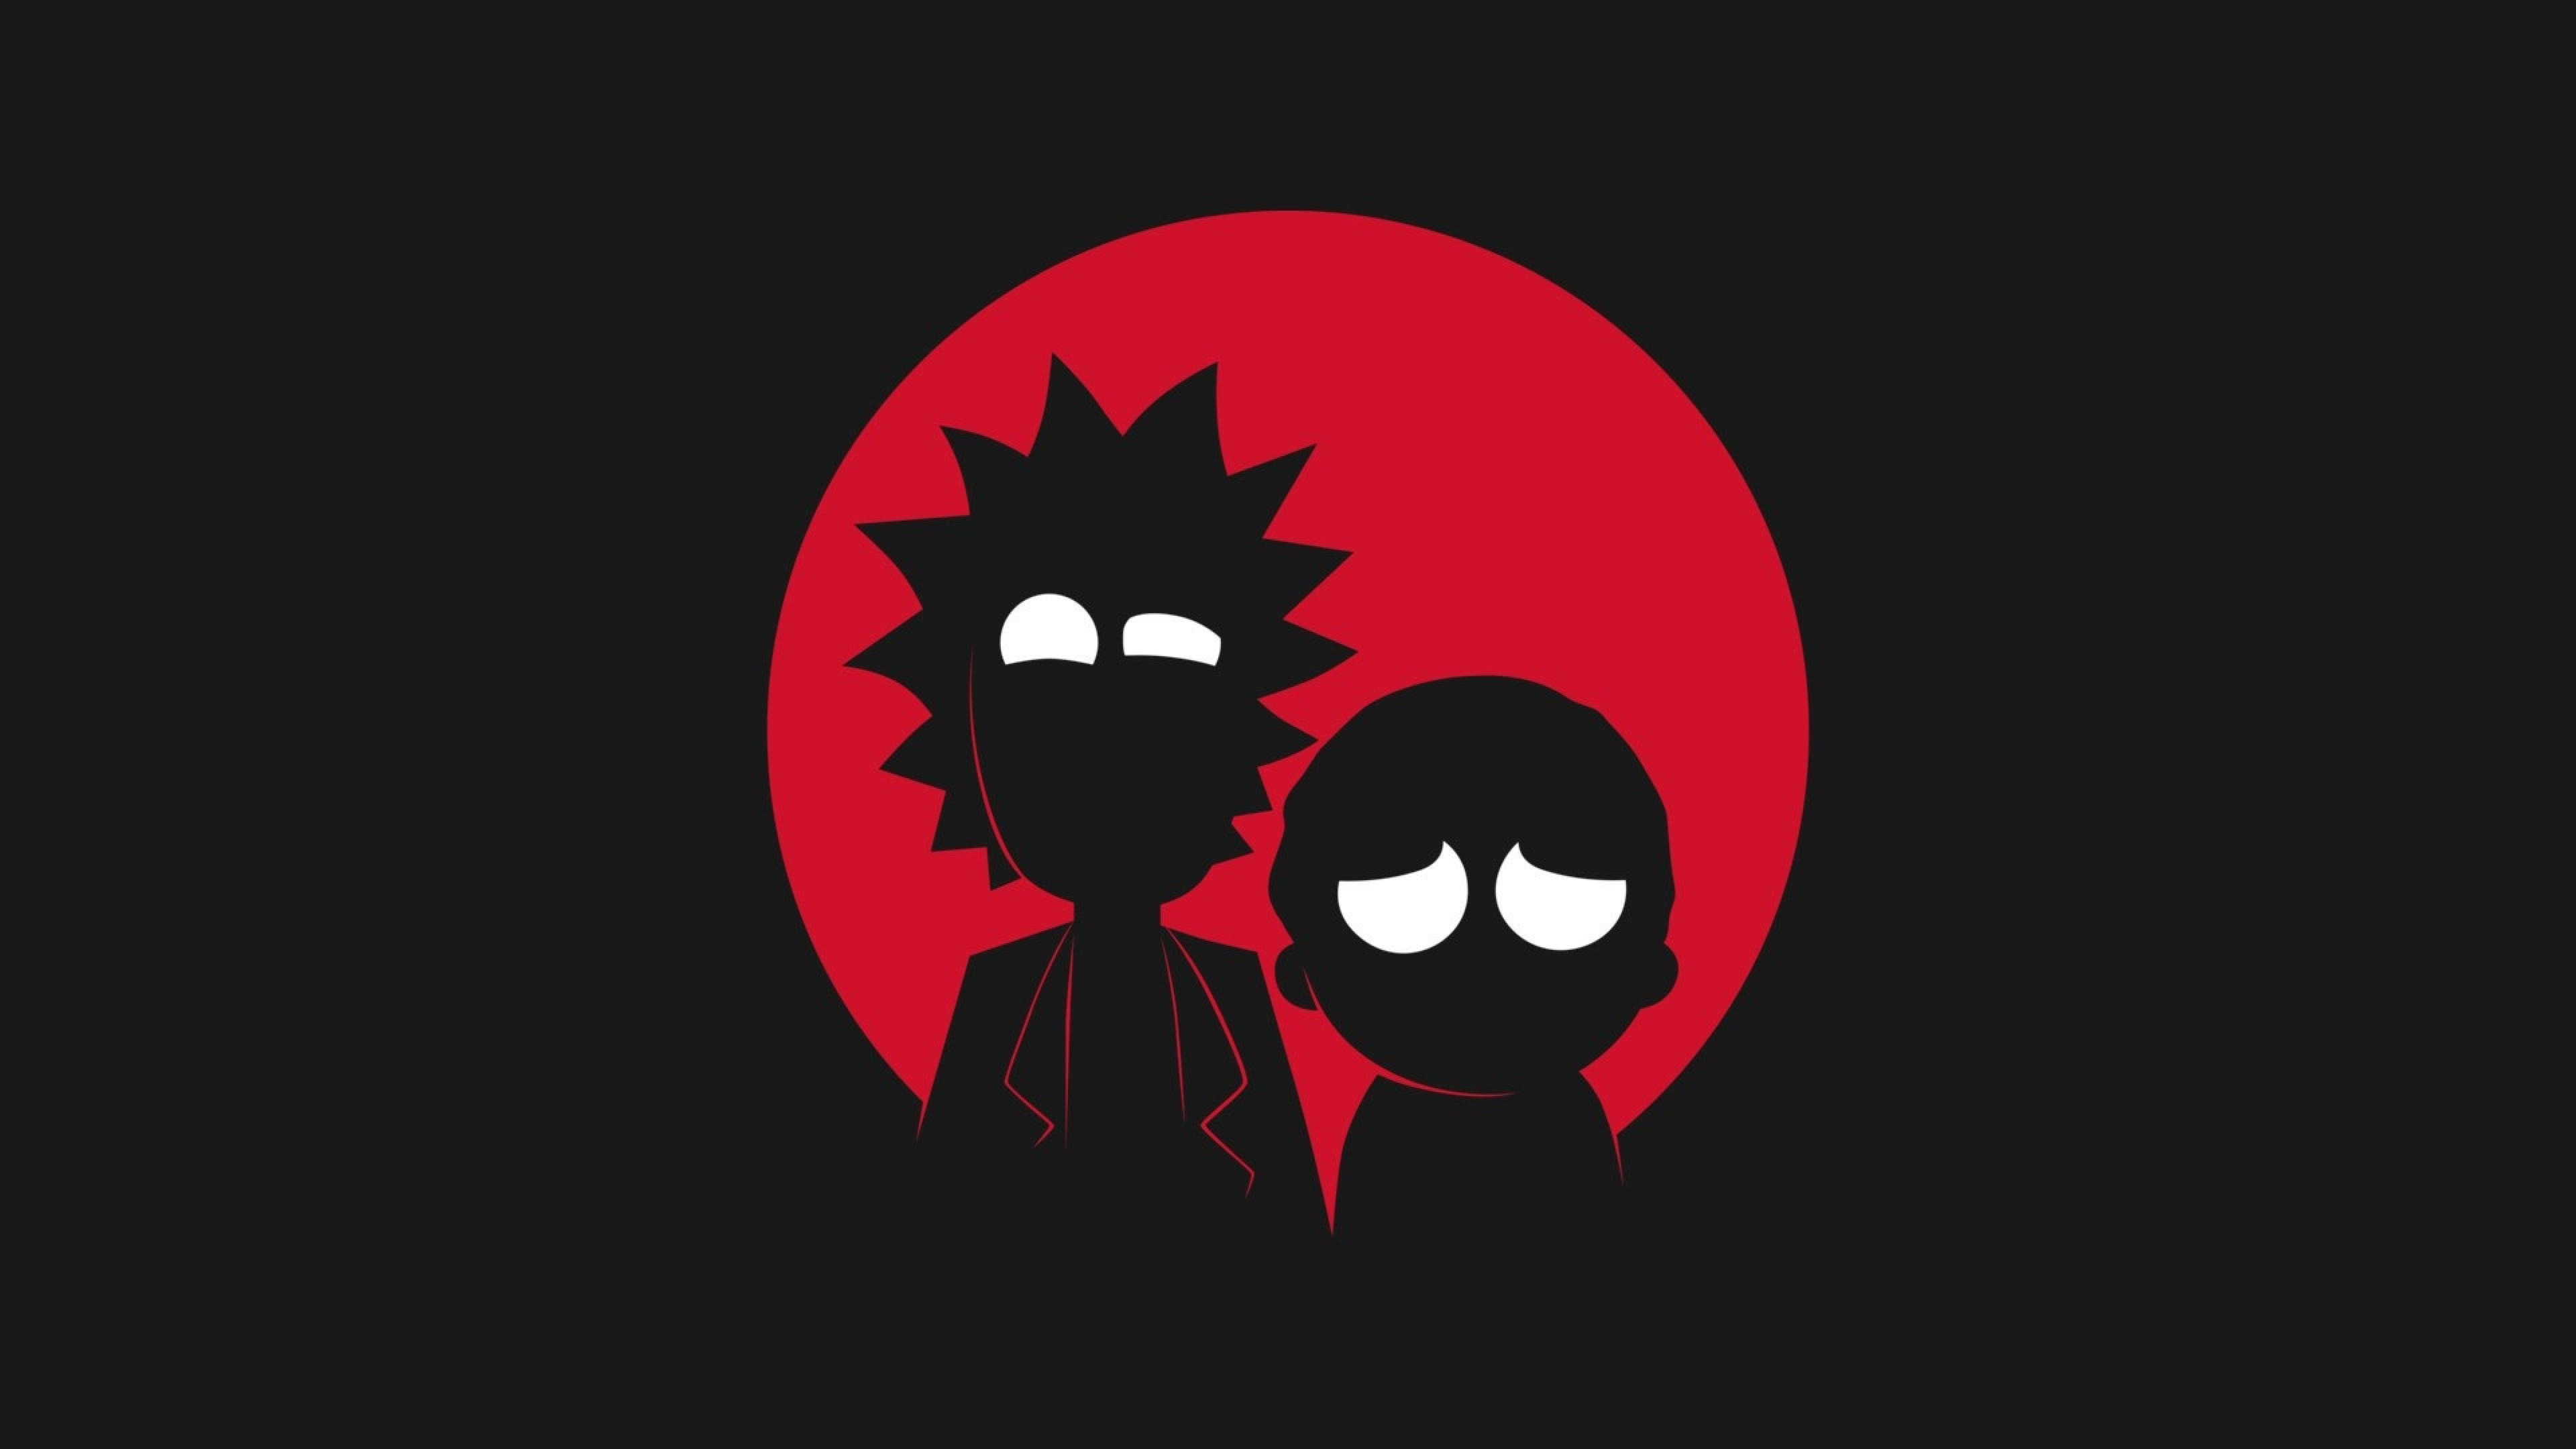 3840x2160 Rick and Morty Dark Minimalistic 4K Wallpaper HD 3840x2160